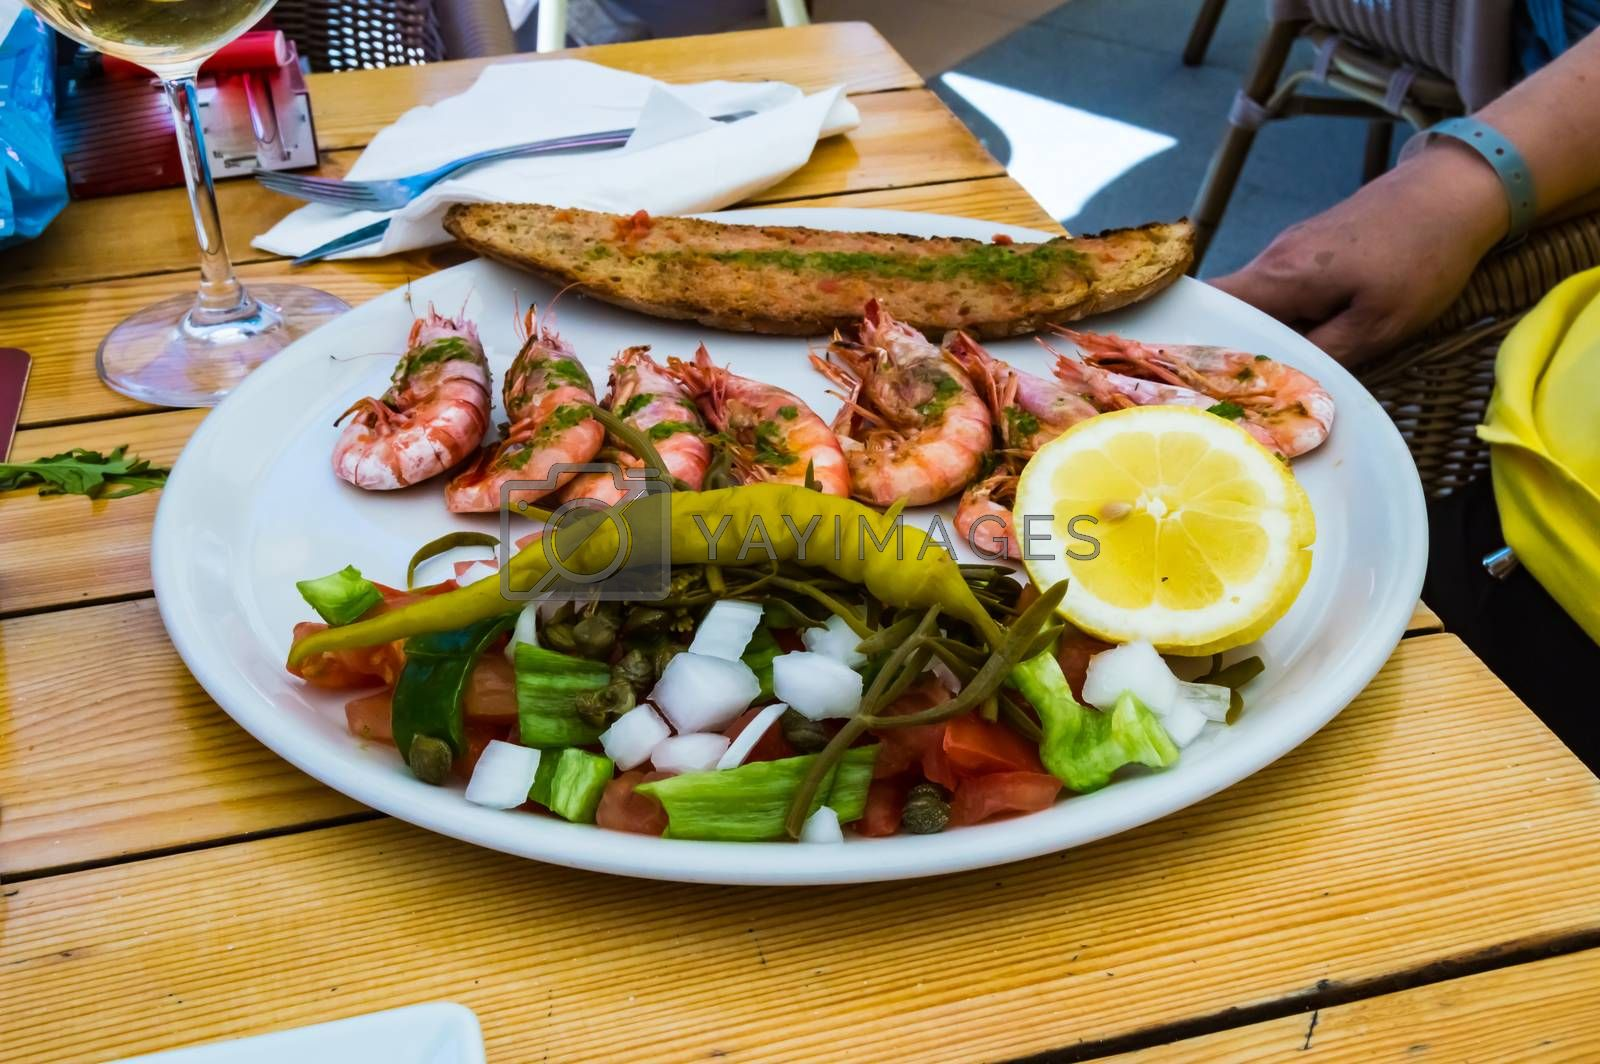 Plate of roasted prawns with slices of bread  by Philou1000